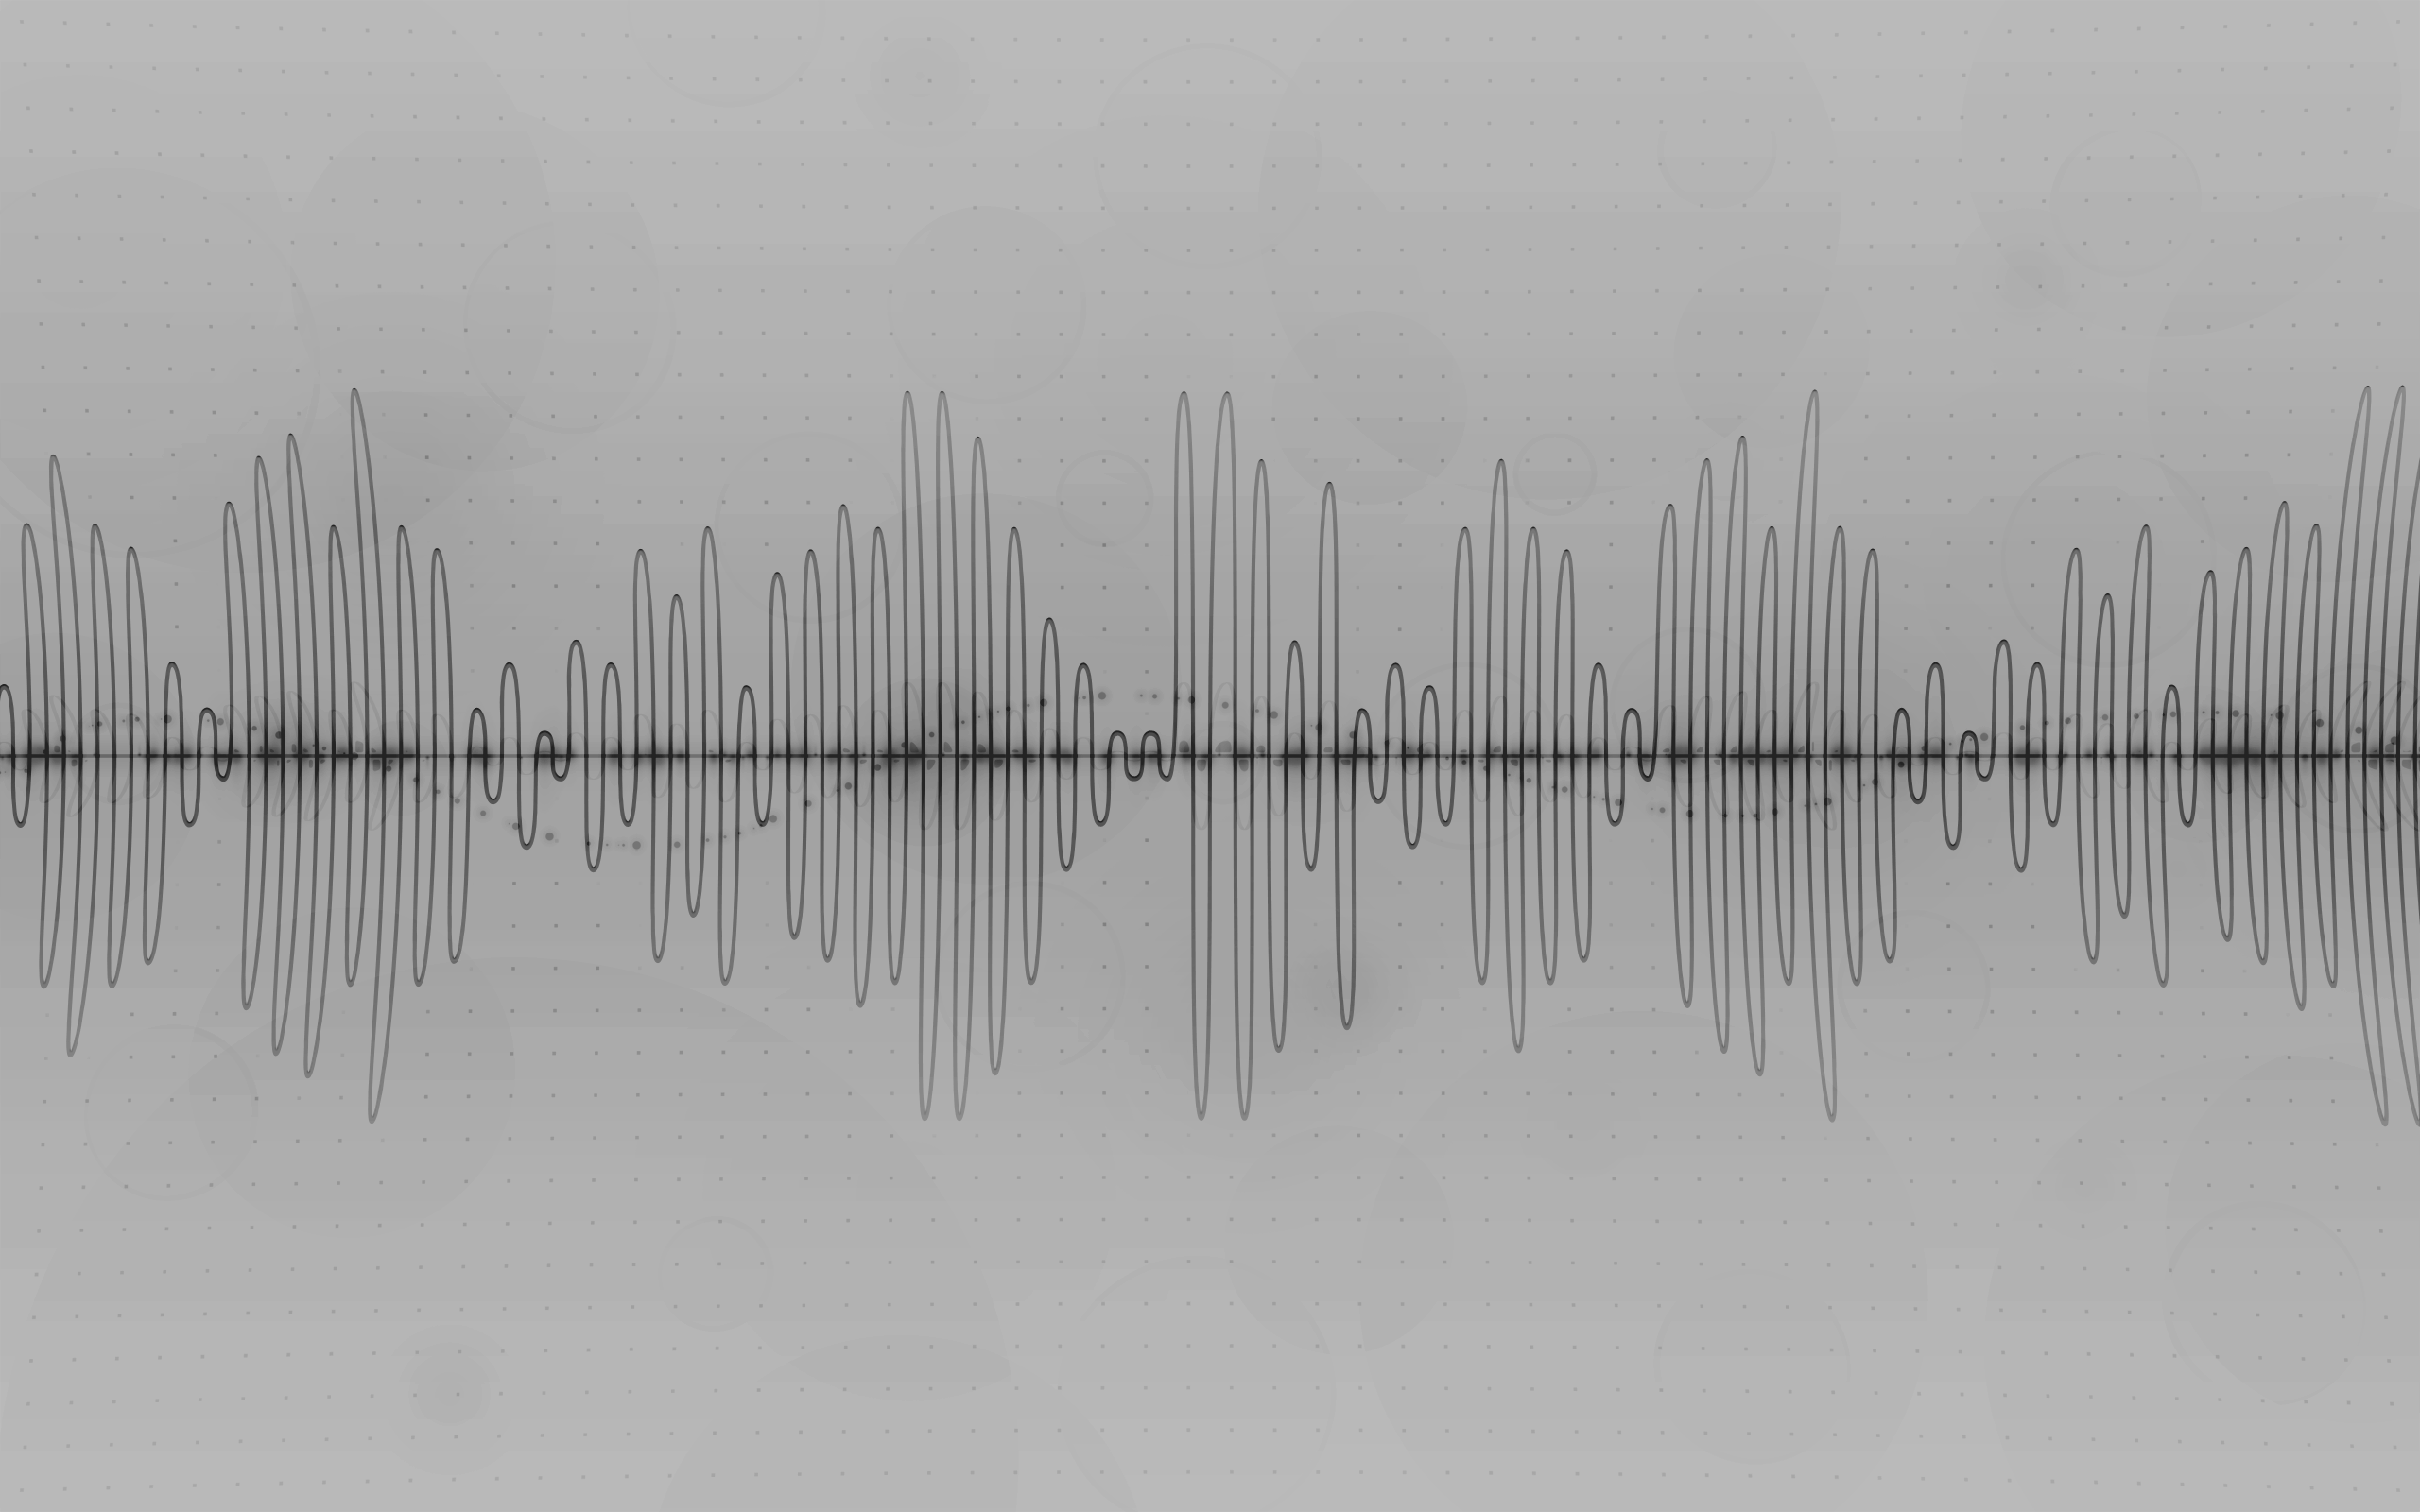 Wallpapers For Sound Waves Wallpaper White Waves Wallpaper Audio Waves Sound Waves